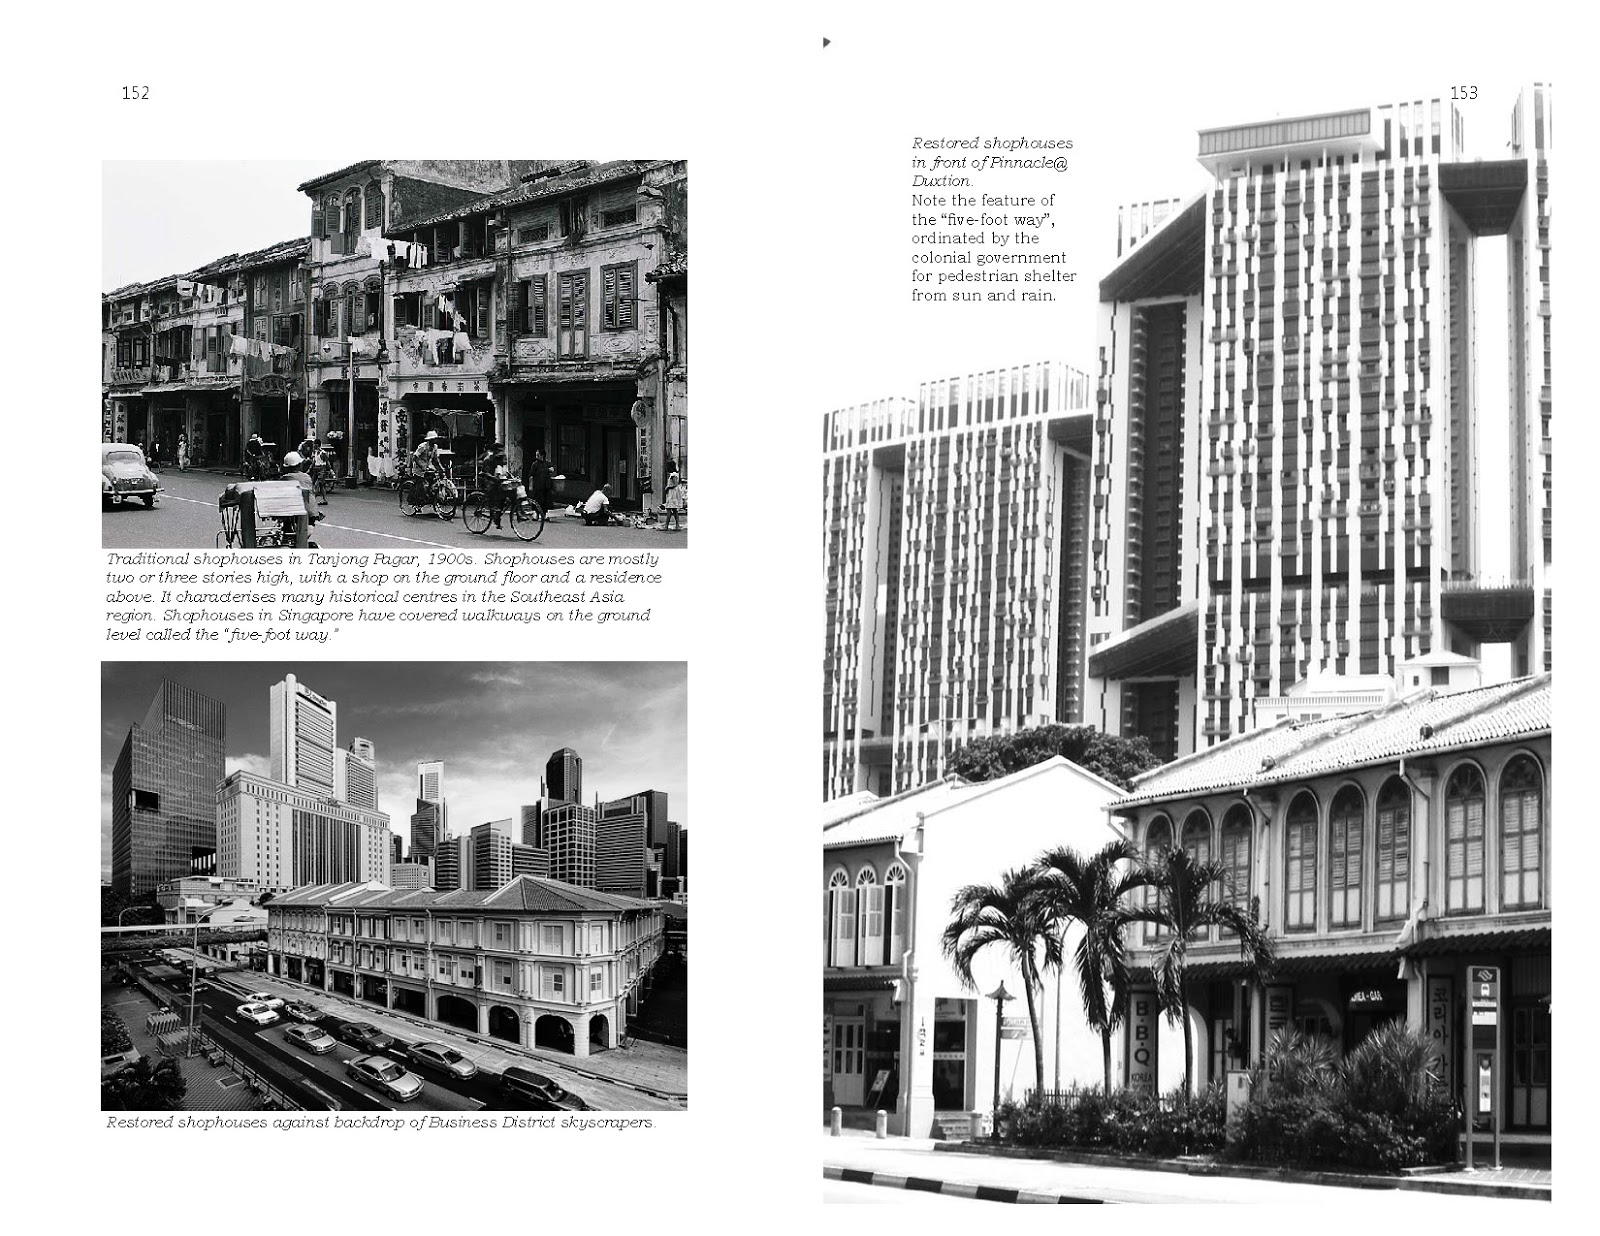 pinnacle duxton history